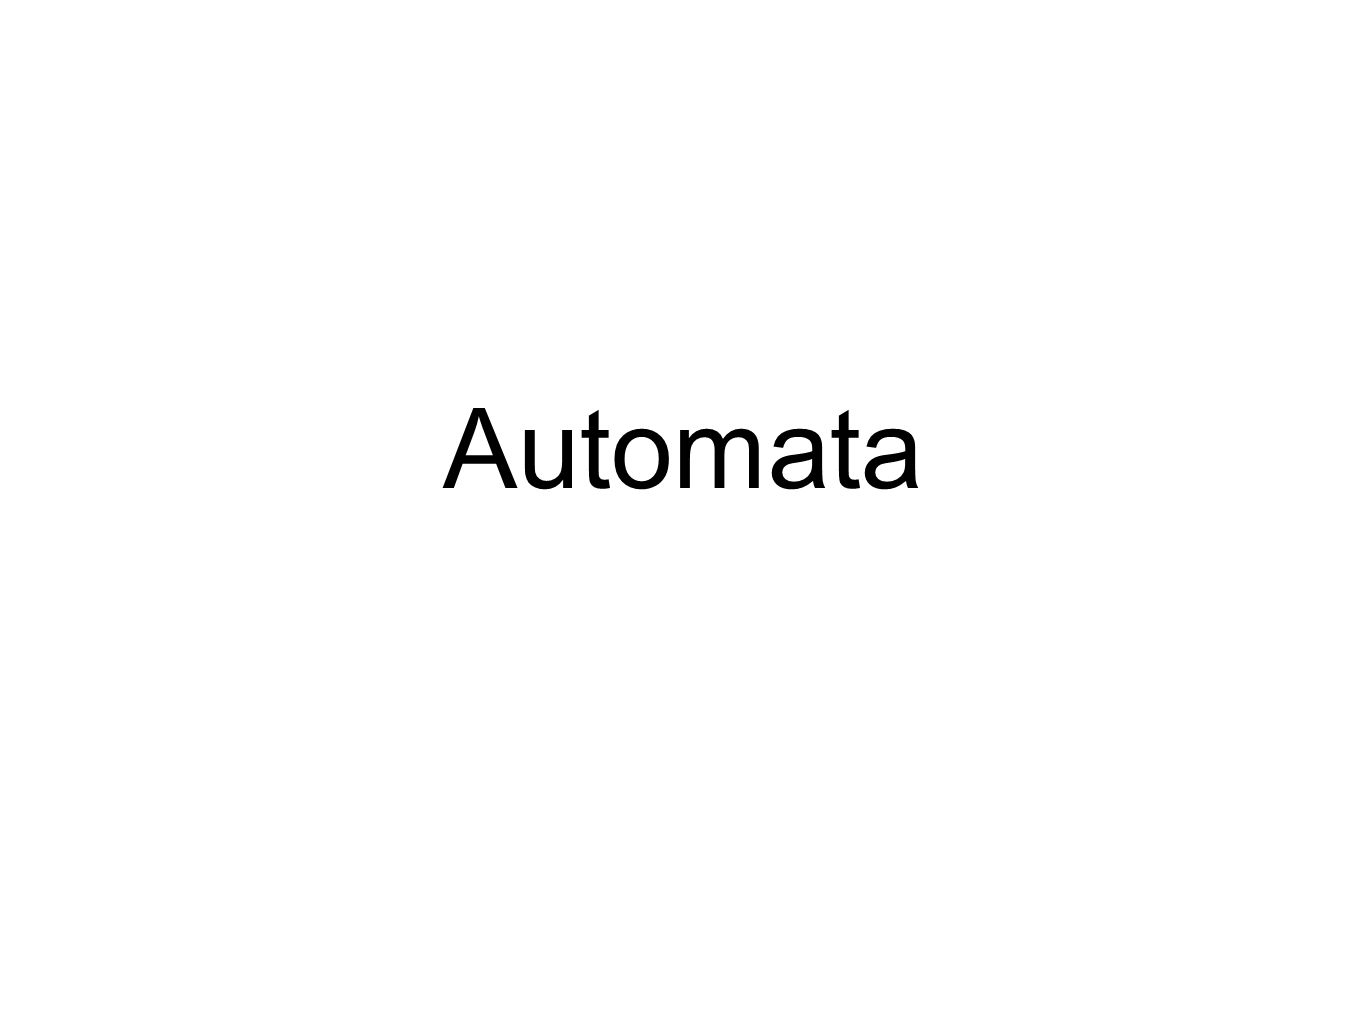 Automaton -- Something which has the power of spontaneous motion or self-movement.